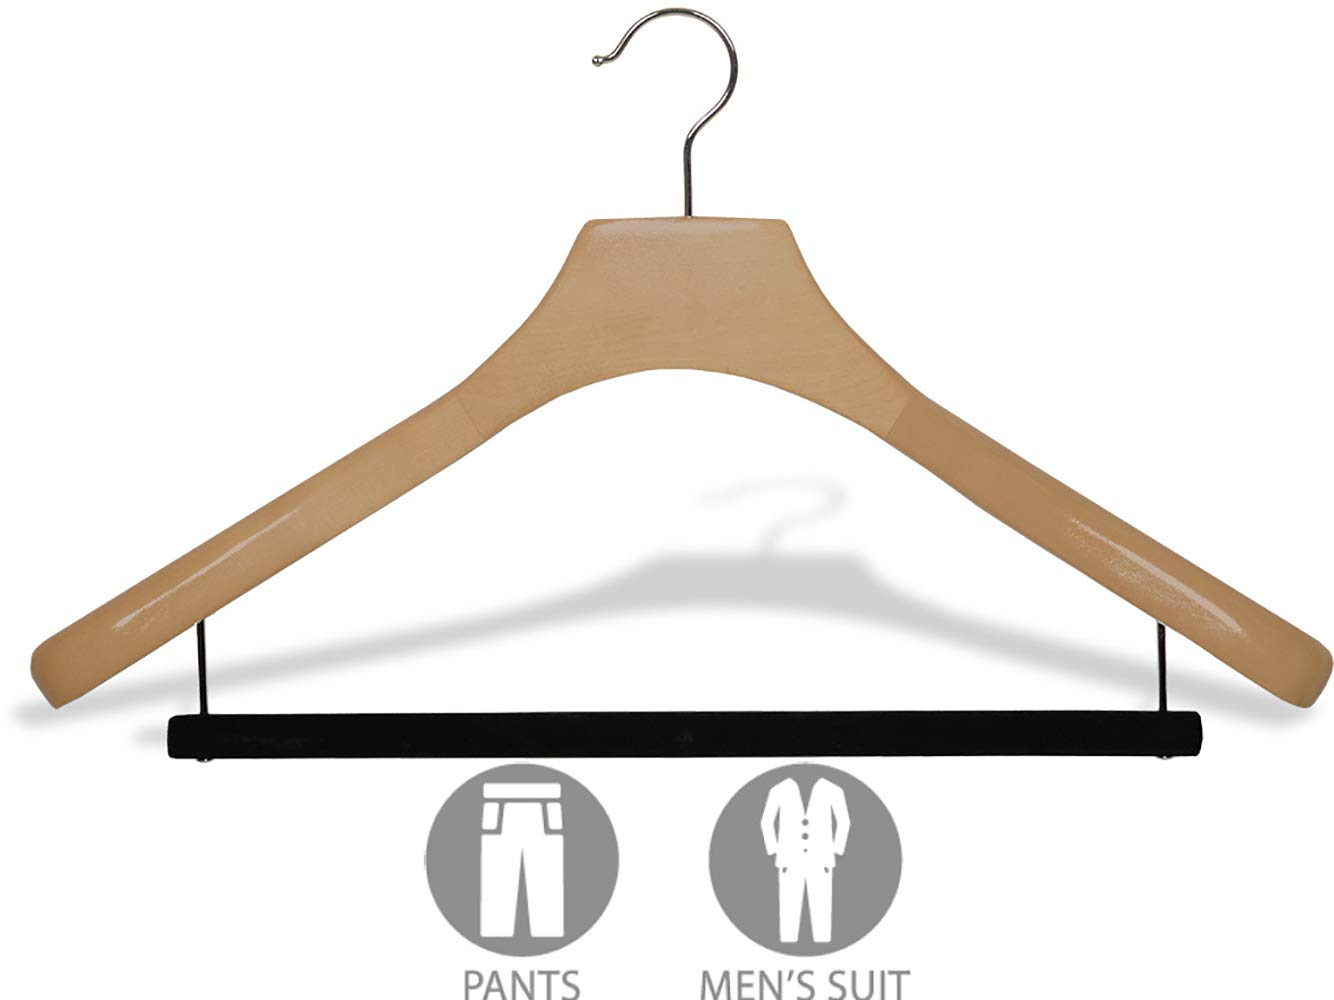 Deluxe Wooden Suit Hanger with Velvet Bar, Natural Finish & Chrome Swivel Hook, Large 2 Inch Wide Contoured Coat & Jacket Hangers (Set of 24) by The Great American Hanger Company by The Great American Hanger Company (Image #3)